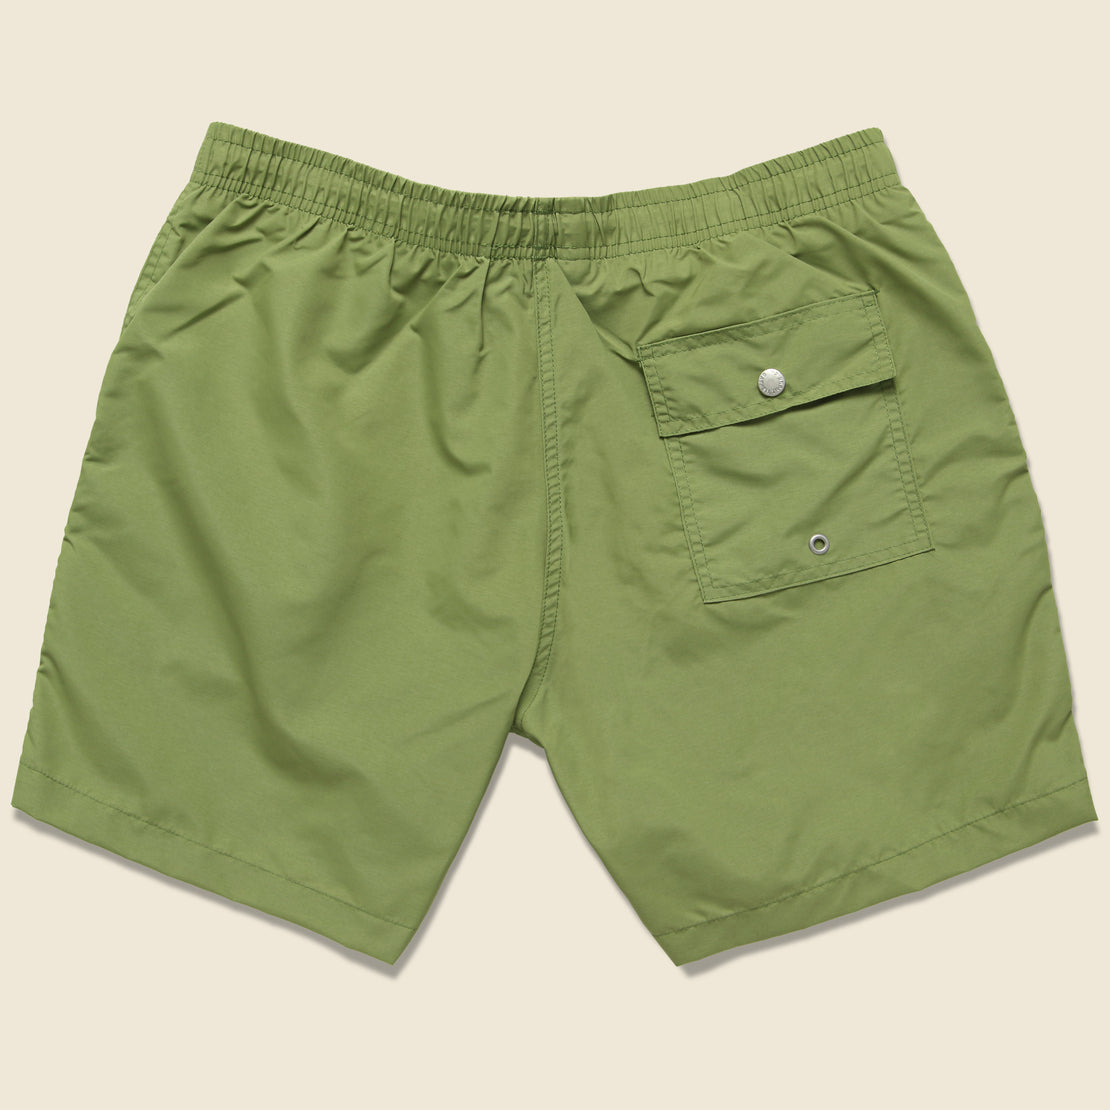 Solid Swim Trunk - Olive